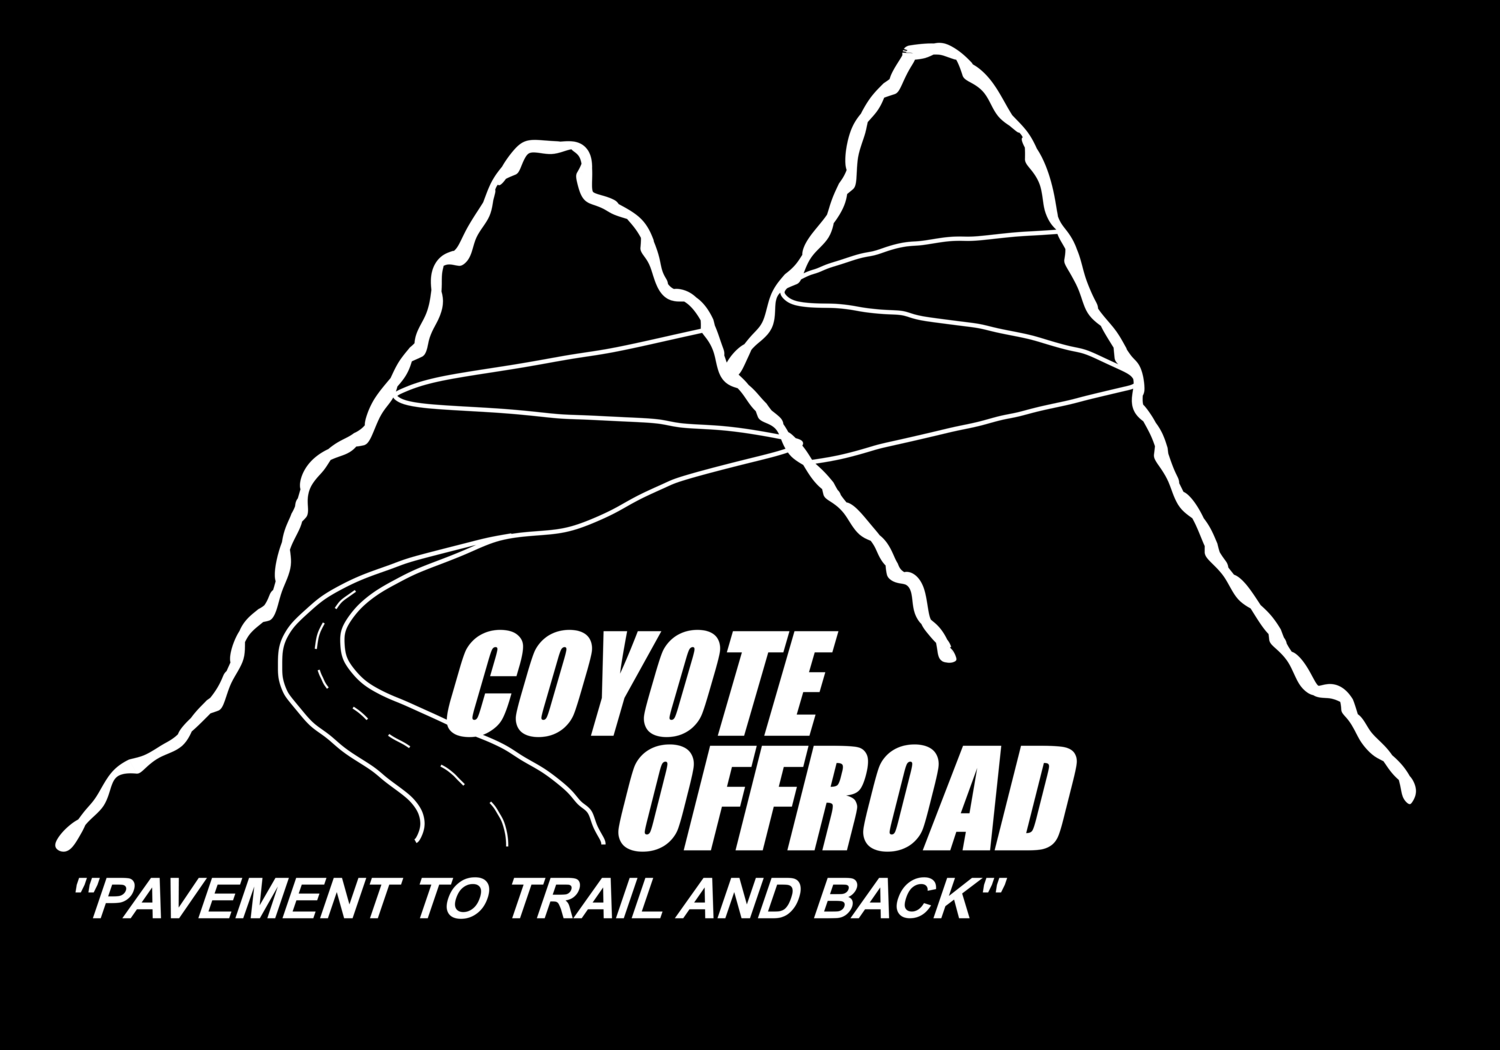 Coyote Offroad